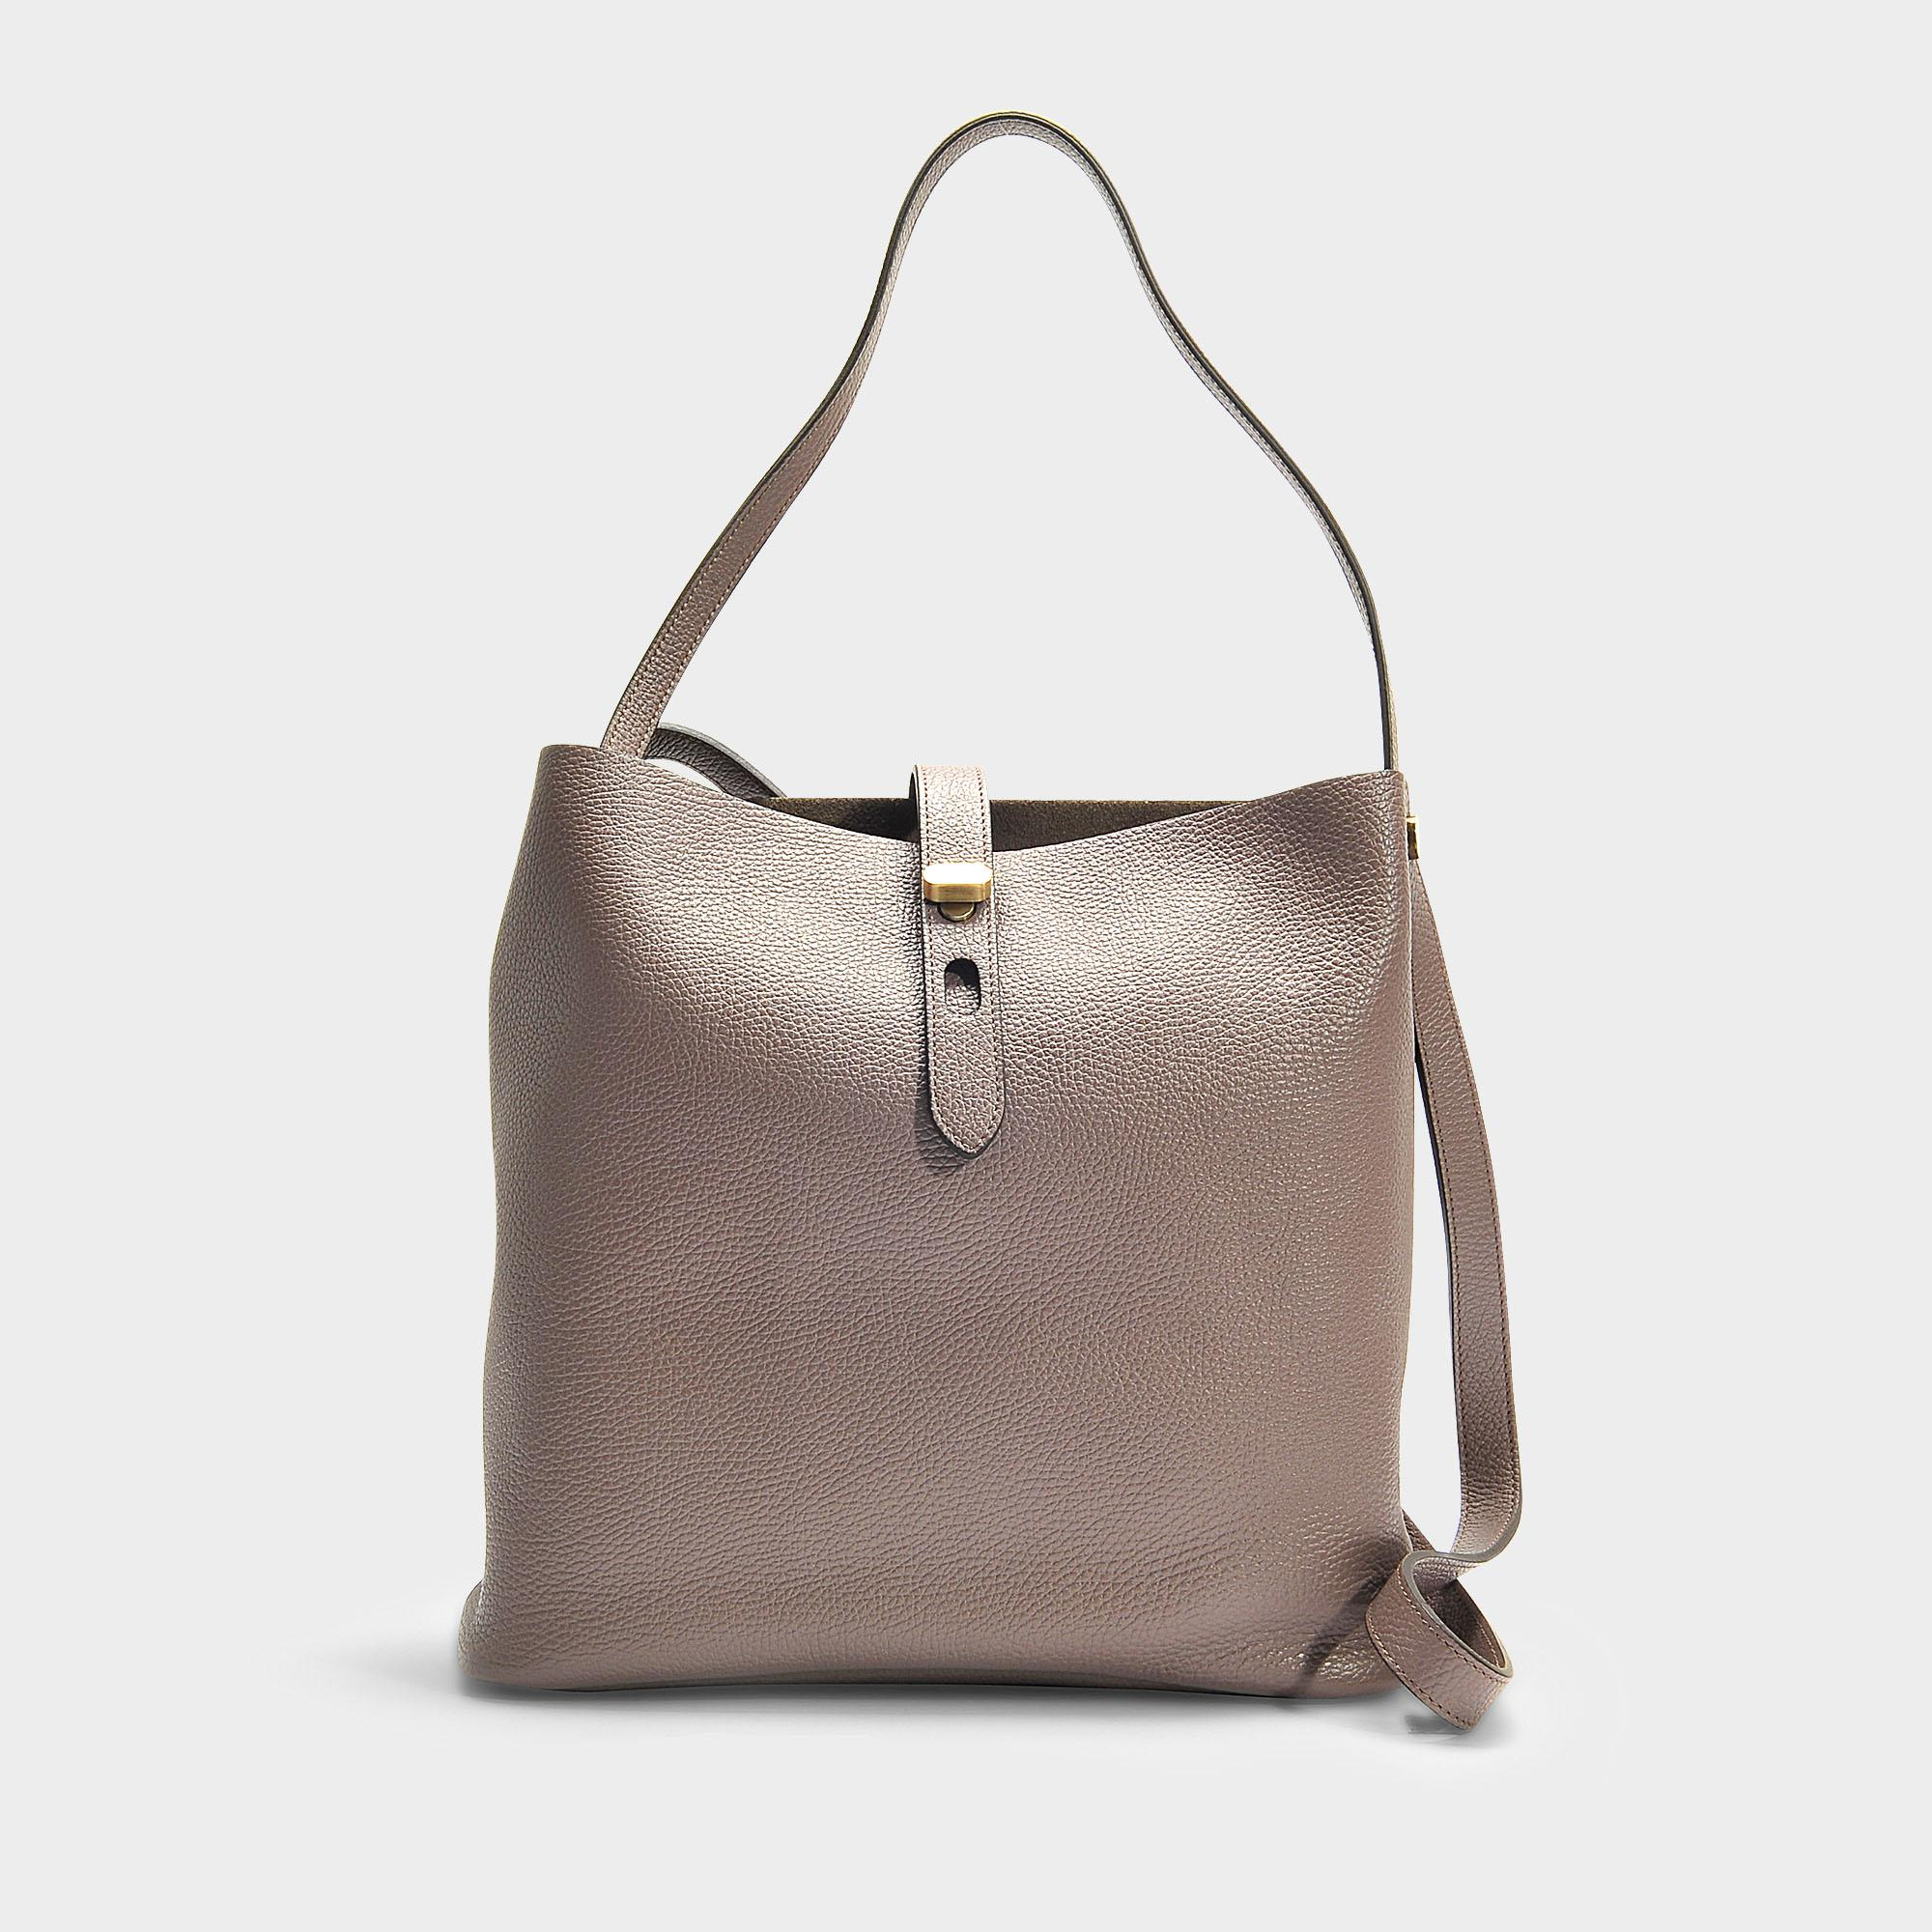 Lyst - Hogan Hobo Iconic Media Bag In Taupe Grained Calfskin in Natural a6127d1953f97